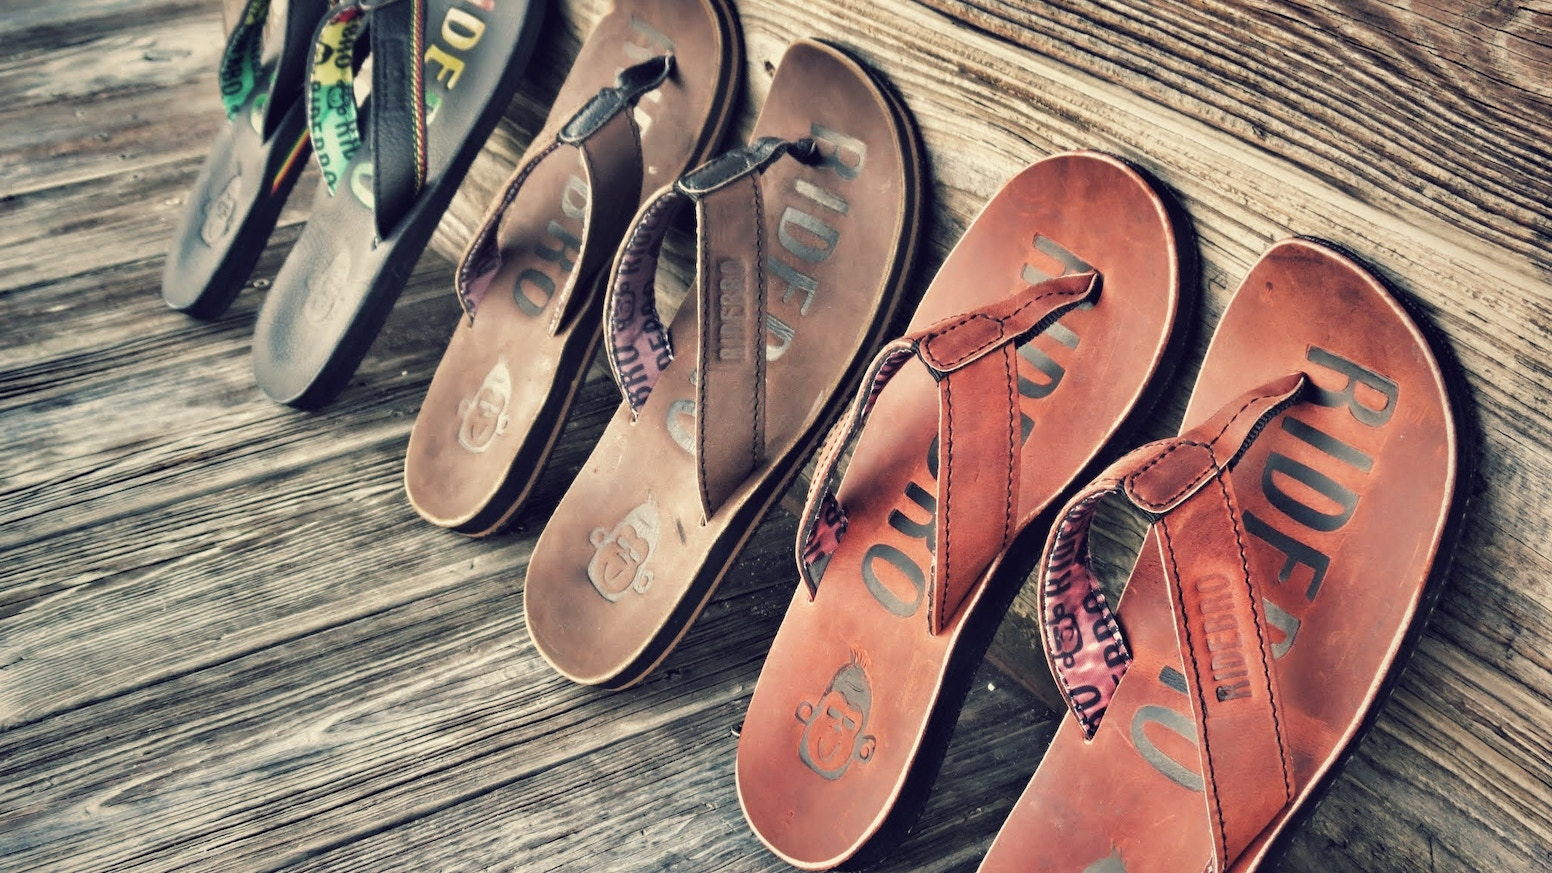 6f293670e RIDEBRO  Handmade Premium Sandals Made of Discarded Tires by ...